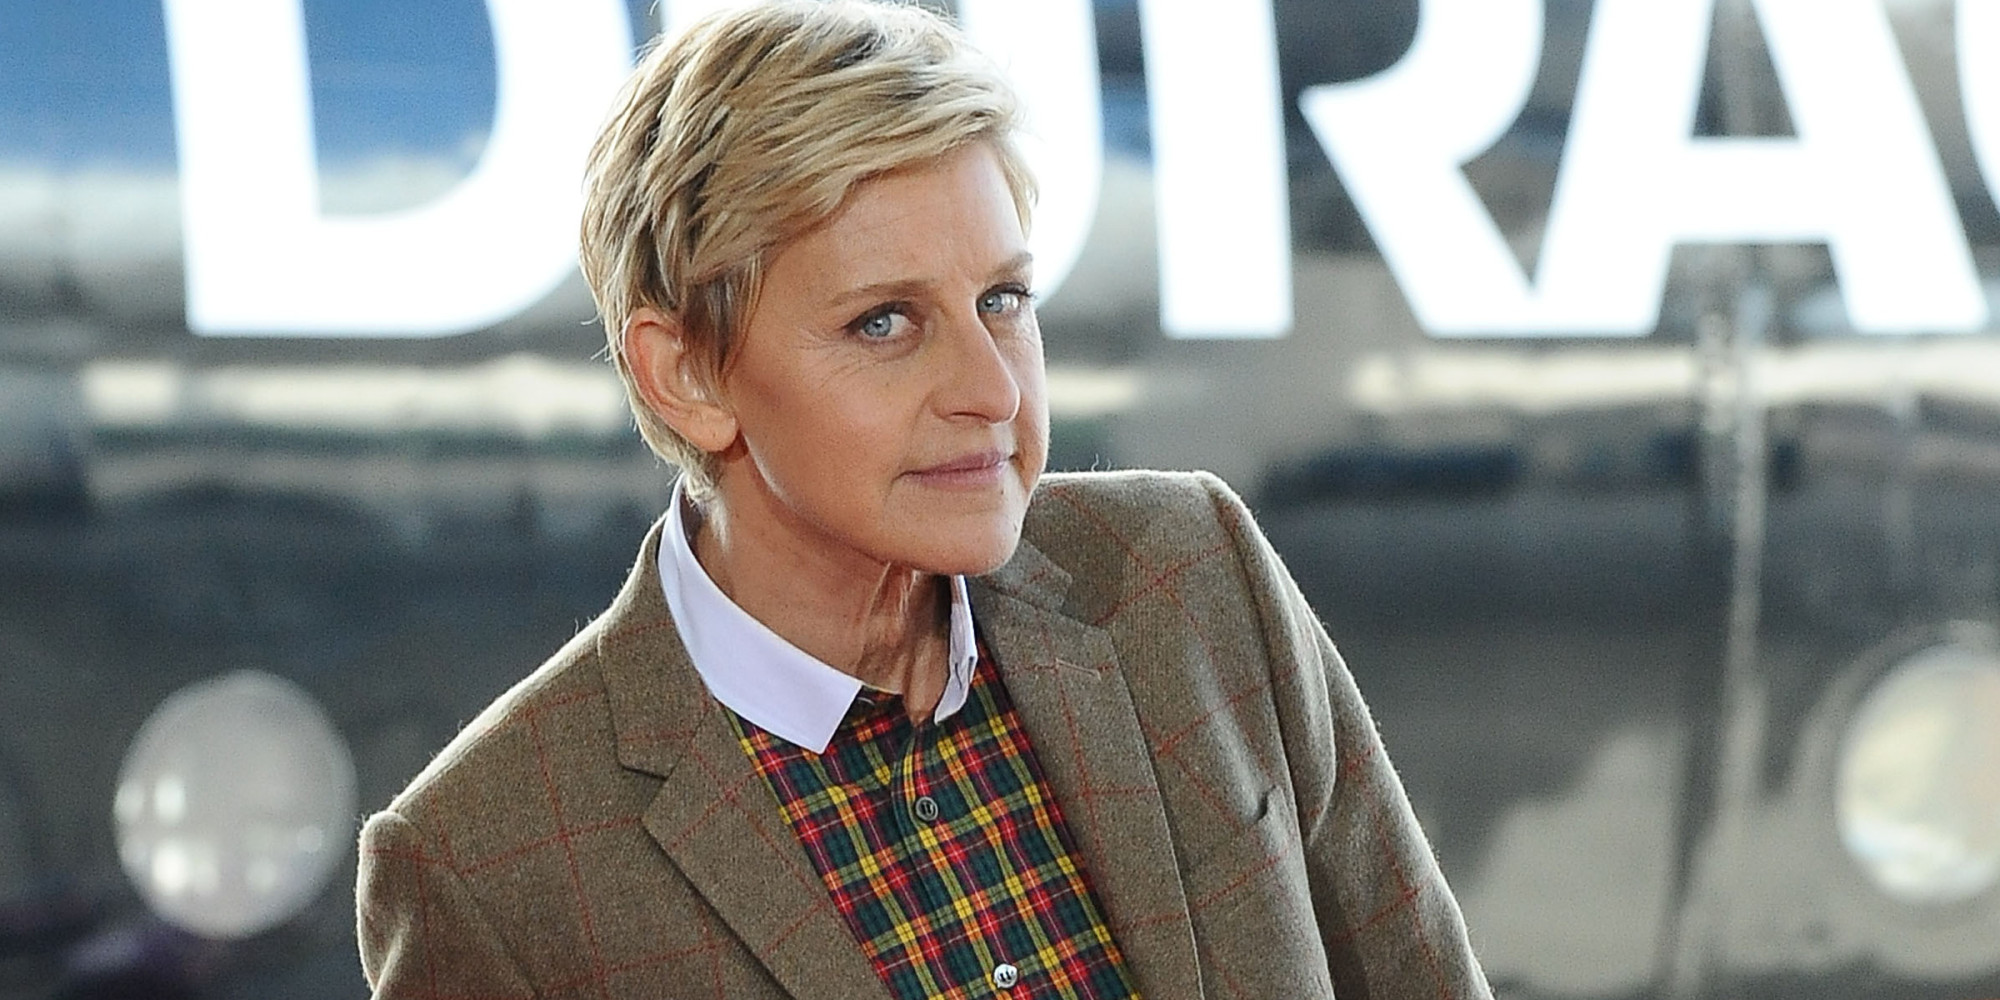 ellen degeneres selfieellen degeneres show, ellen degeneres instagram, ellen degeneres wife, ellen degeneres wiki, ellen degeneres net worth, ellen degeneres & portia de rossi, ellen degeneres house, ellen degeneres oscar, ellen degeneres brother, ellen degeneres vk, ellen degeneres youtube, ellen degeneres game, ellen degeneres style, ellen degeneres selfie, ellen degeneres insta, ellen degeneres stand up, ellen degeneres quotes, ellen degeneres interview, ellen degeneres twitter, ellen degeneres email